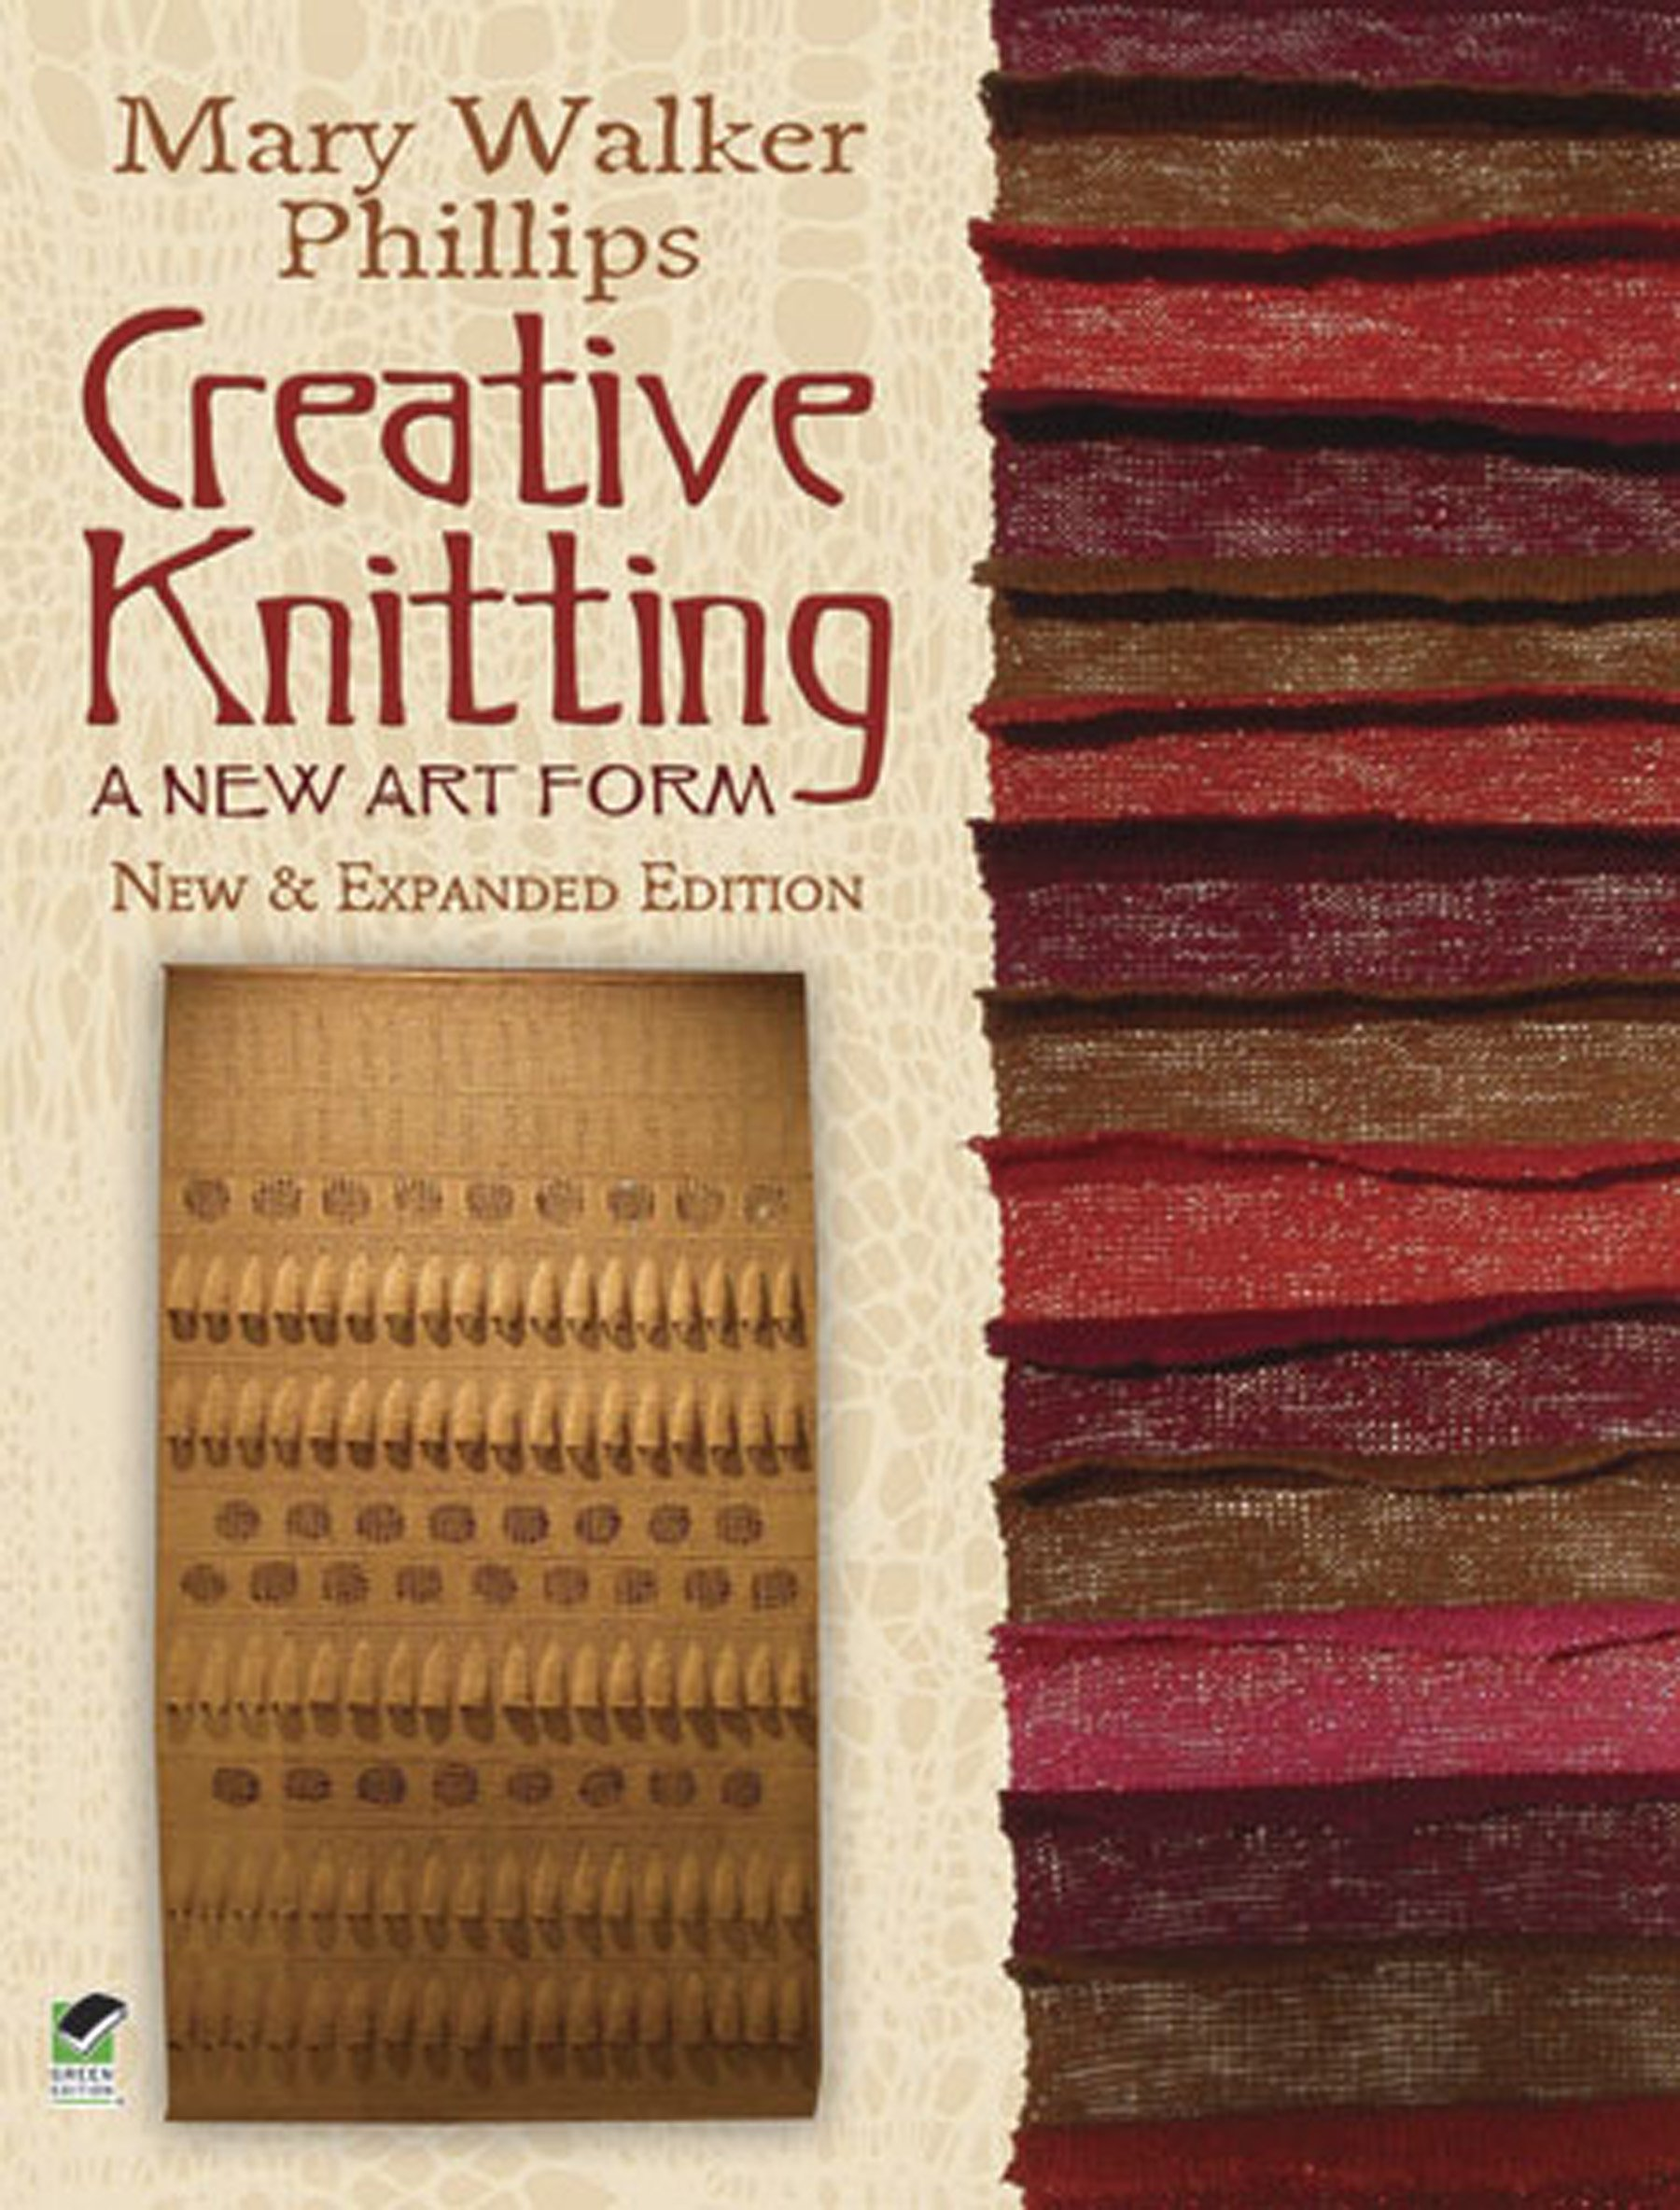 Creative Knitting: A New Art Form. New & Expanded Edition (Dover Knitting, Crochet, Tatting, Lace)